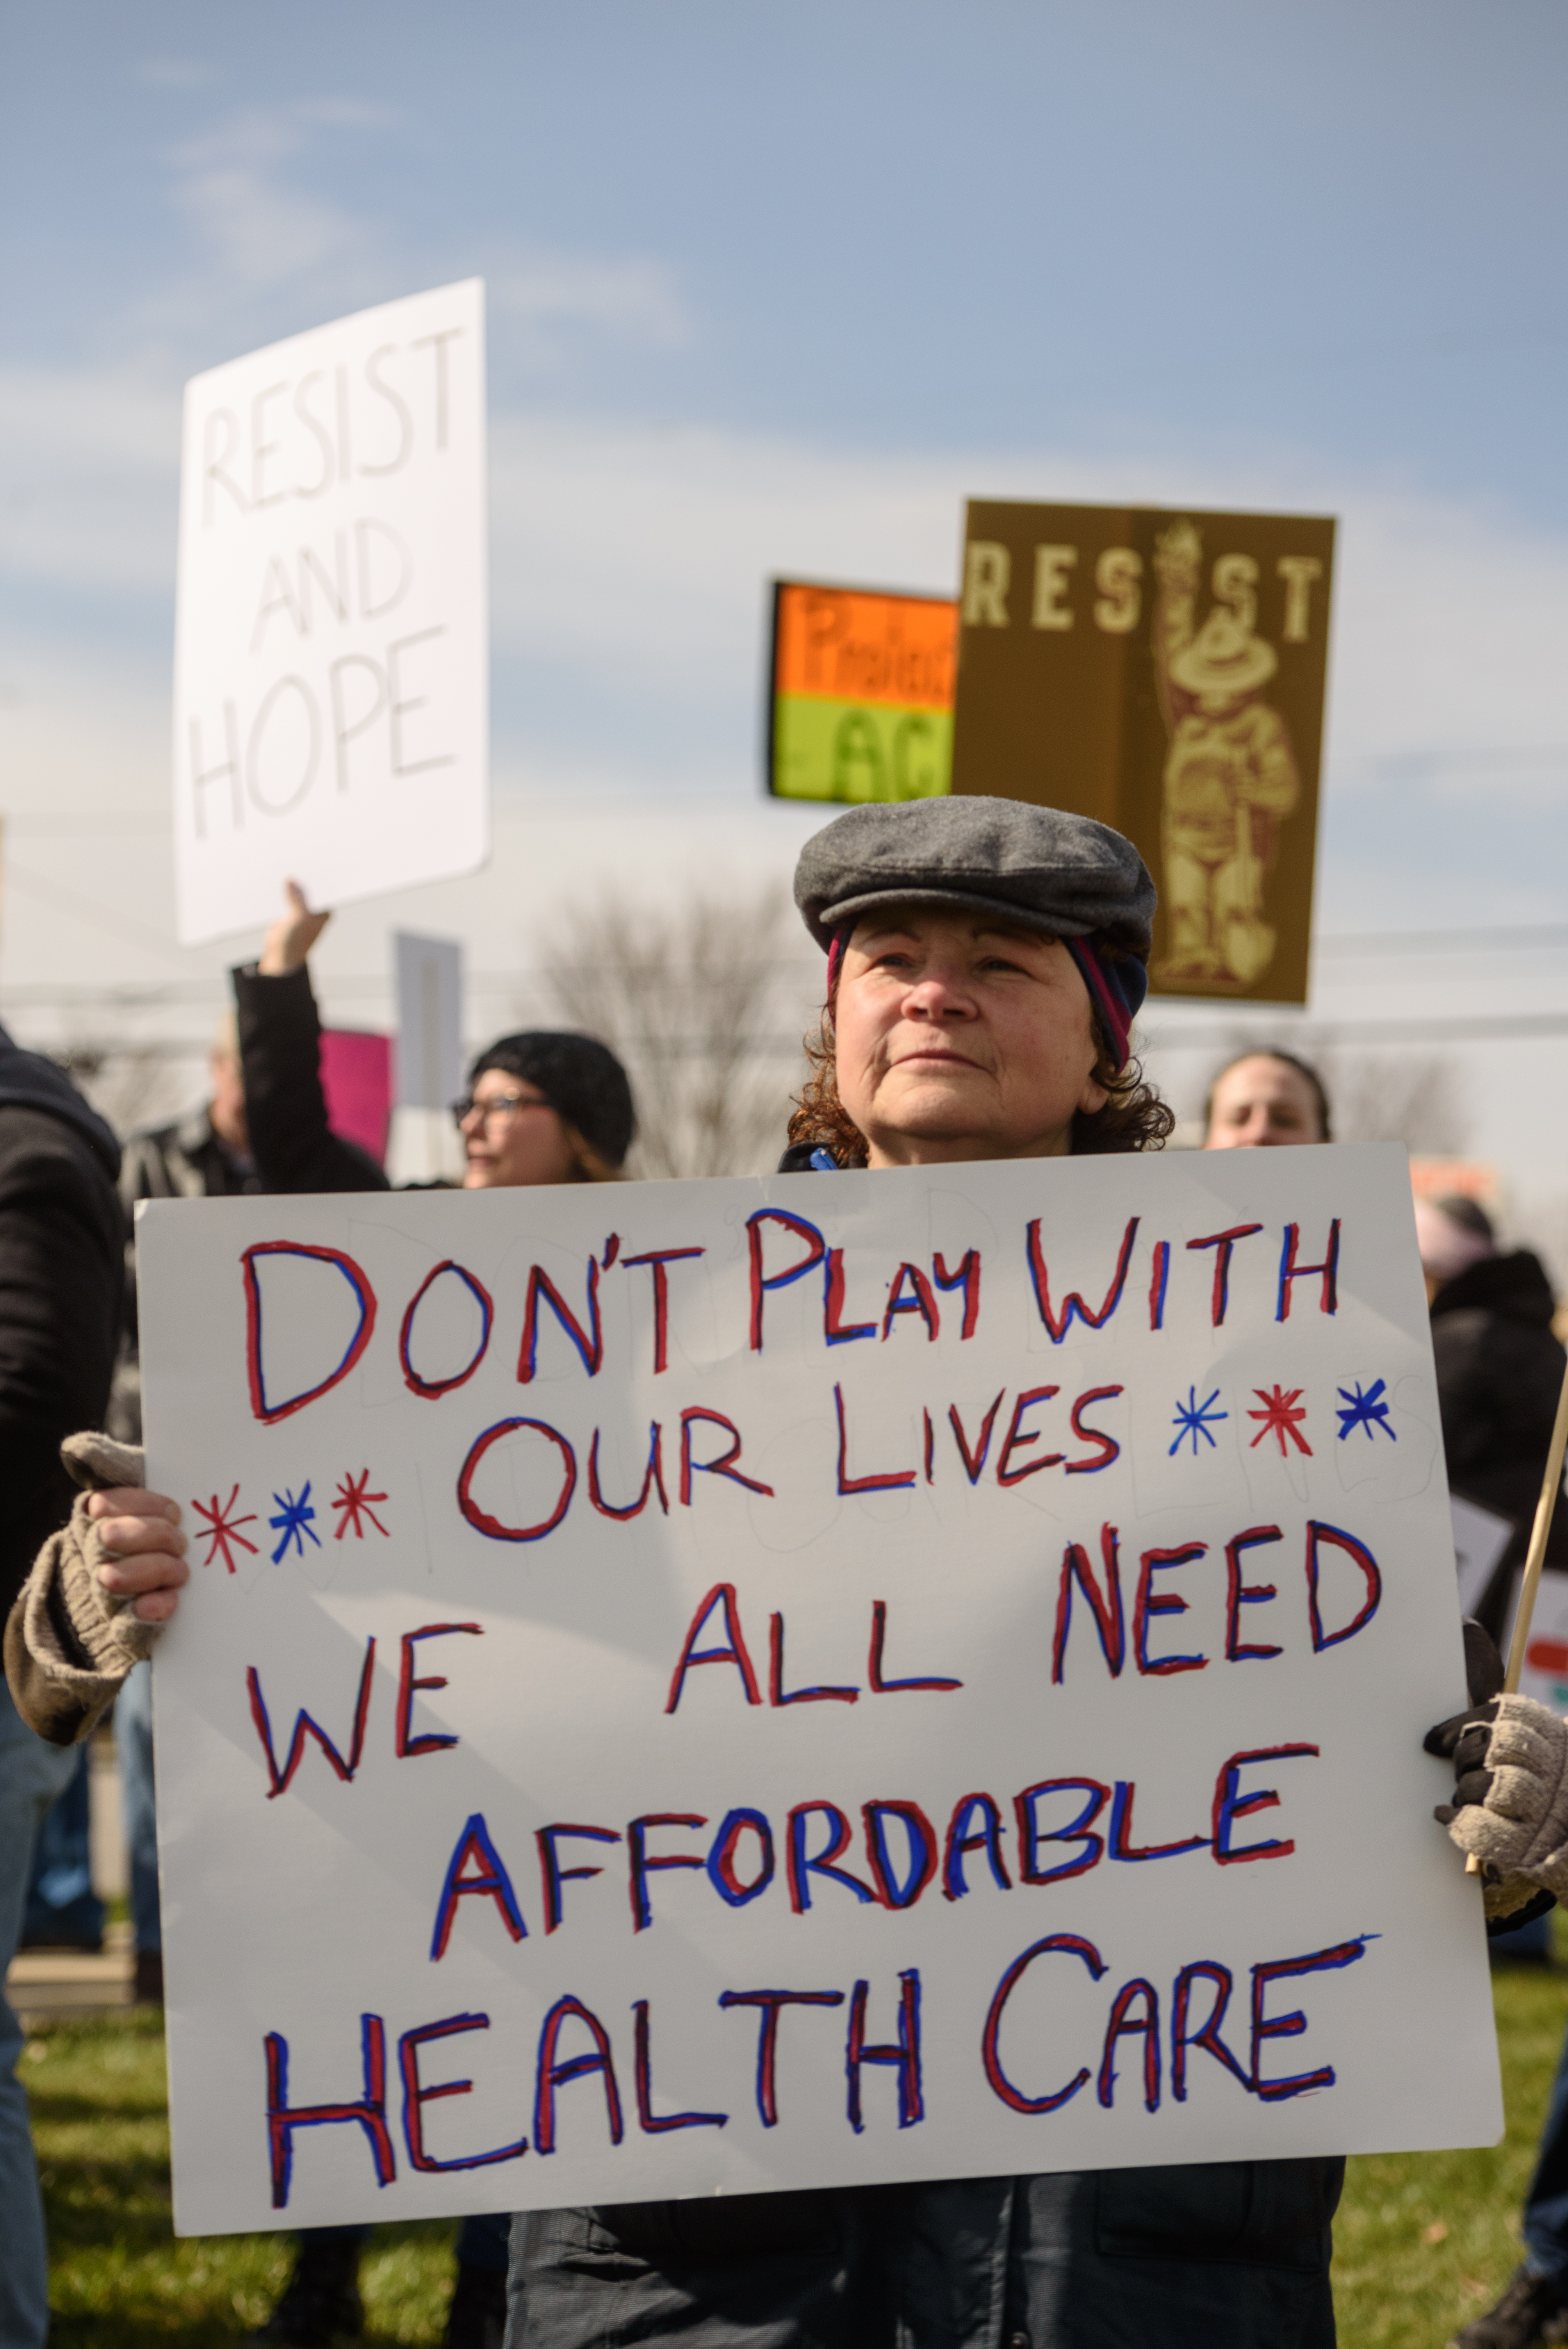 """Holding a sign that read, """"Don't play with our lives - We all need affordable healthcare,"""" Melinda Feldman said, """"I'm here because I'm an American and I care about healthcare, and not just for myself."""""""